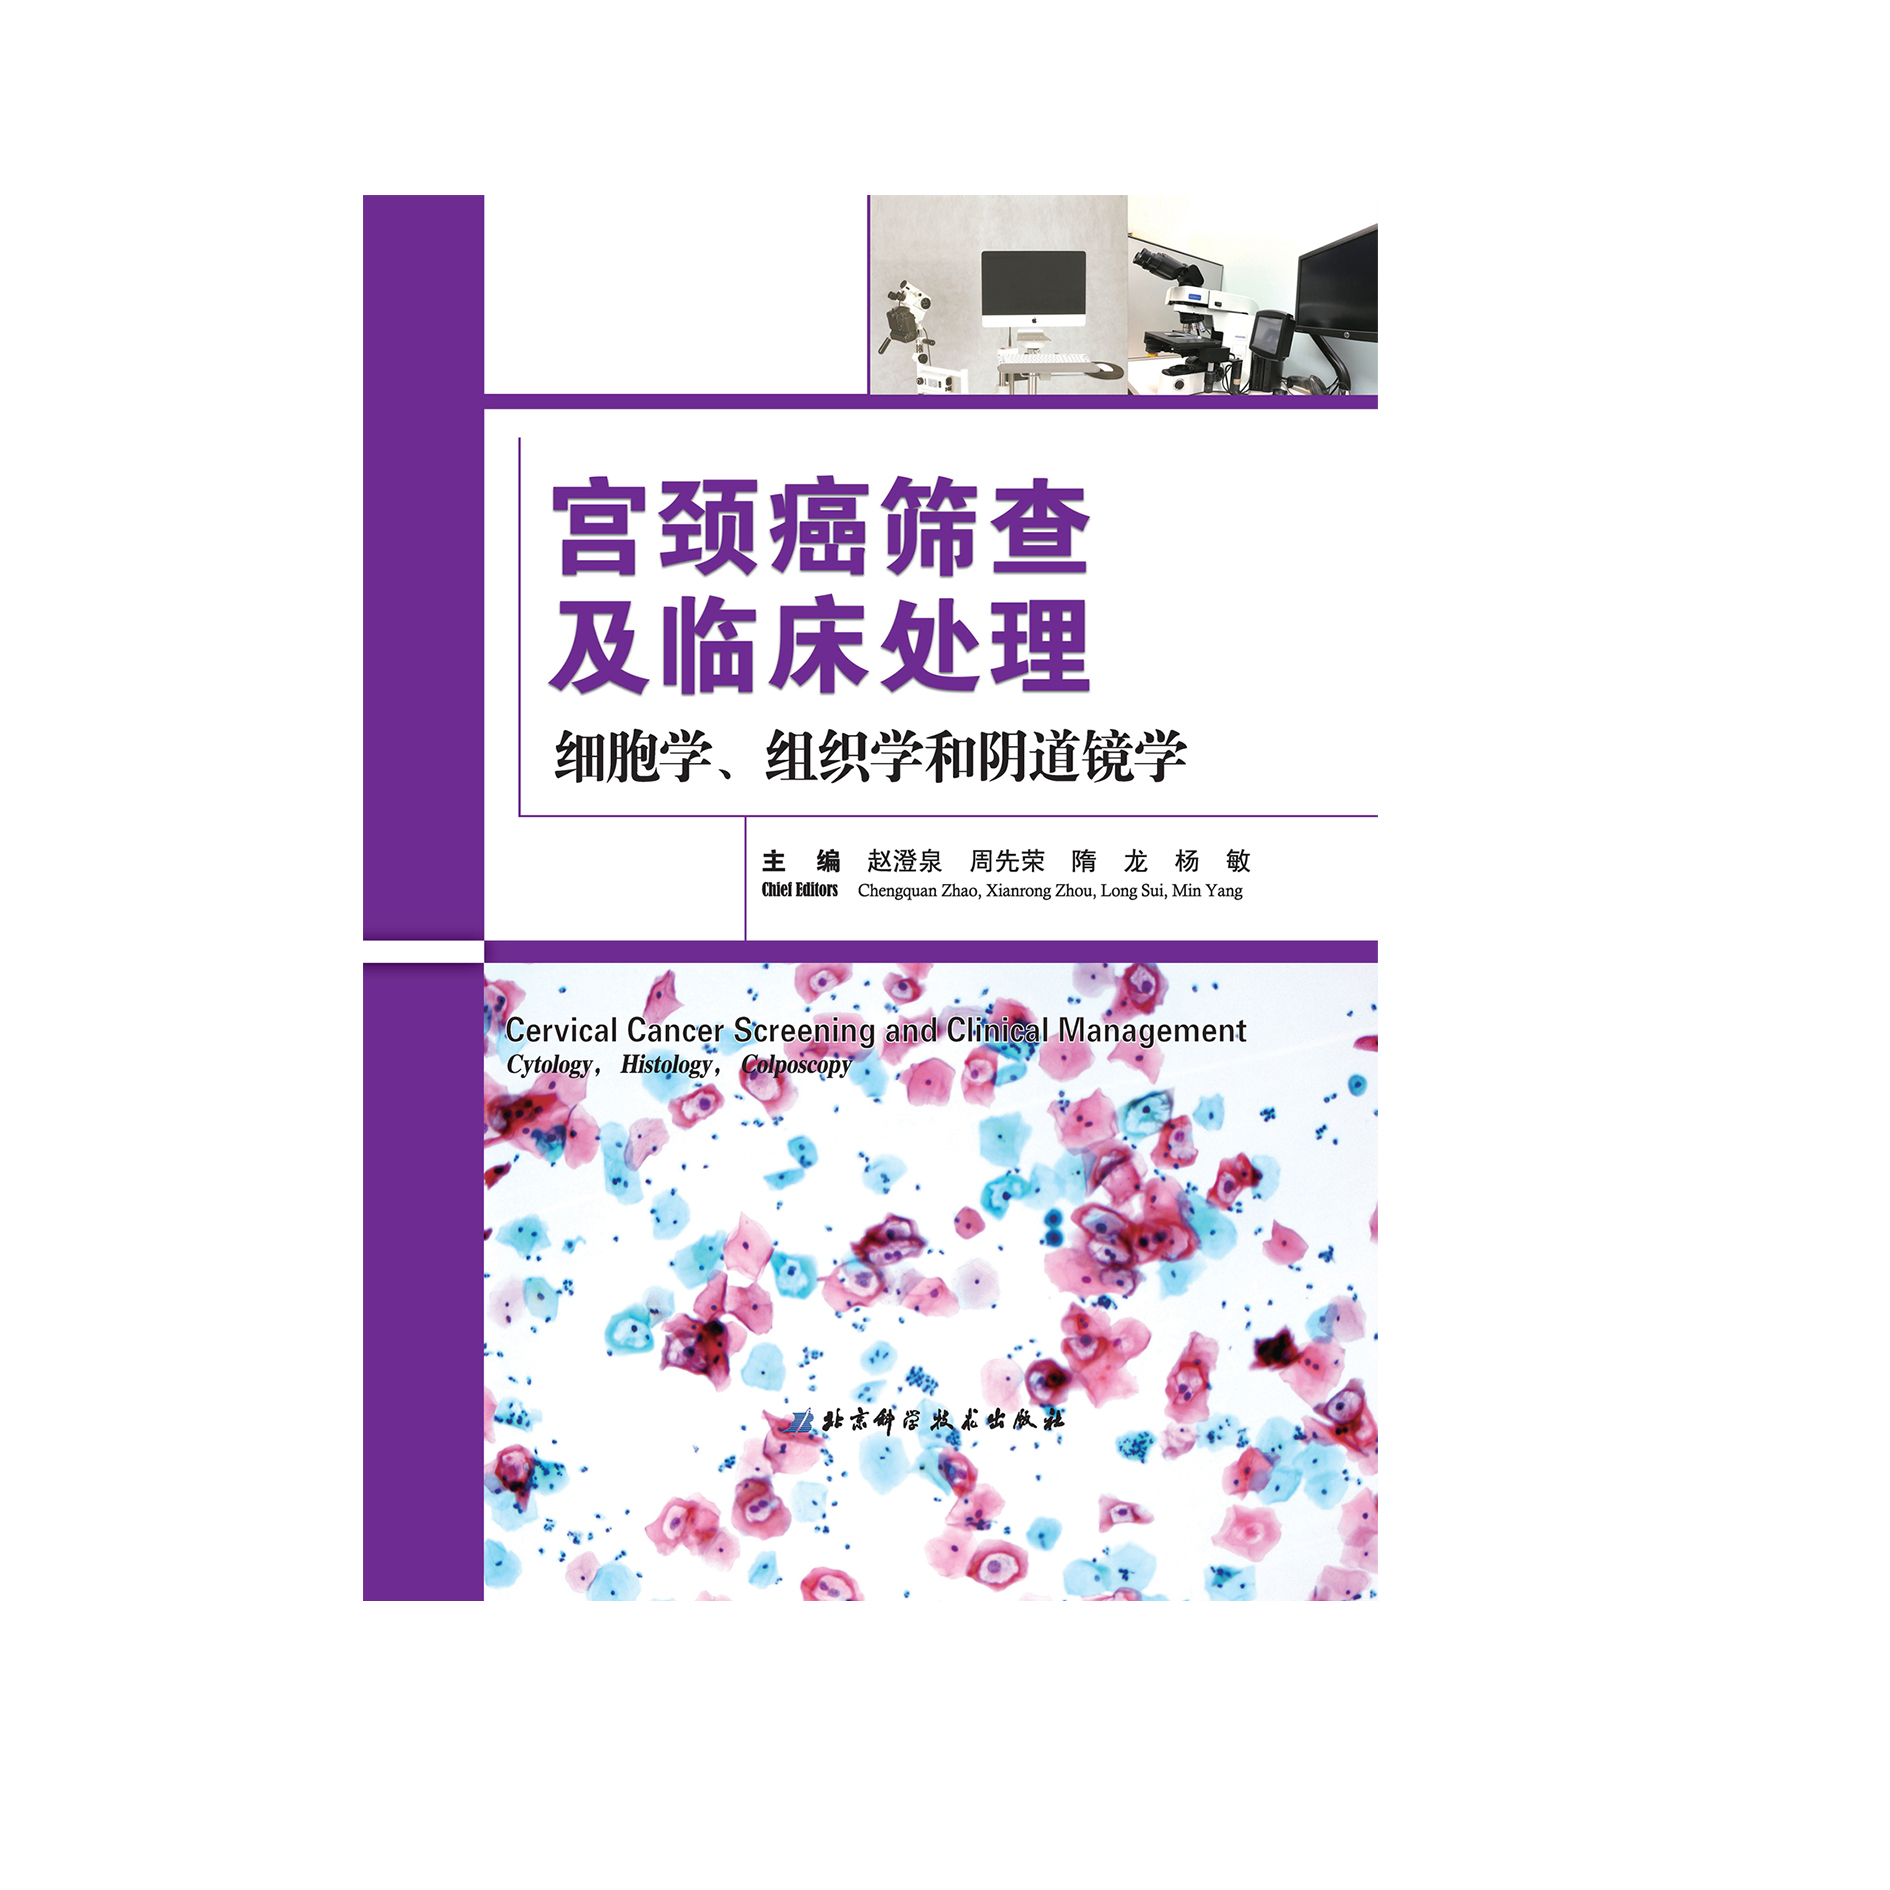 Cervical Cancer Screening and Clinical Treatment: Cytology, Histology and Colposcopy